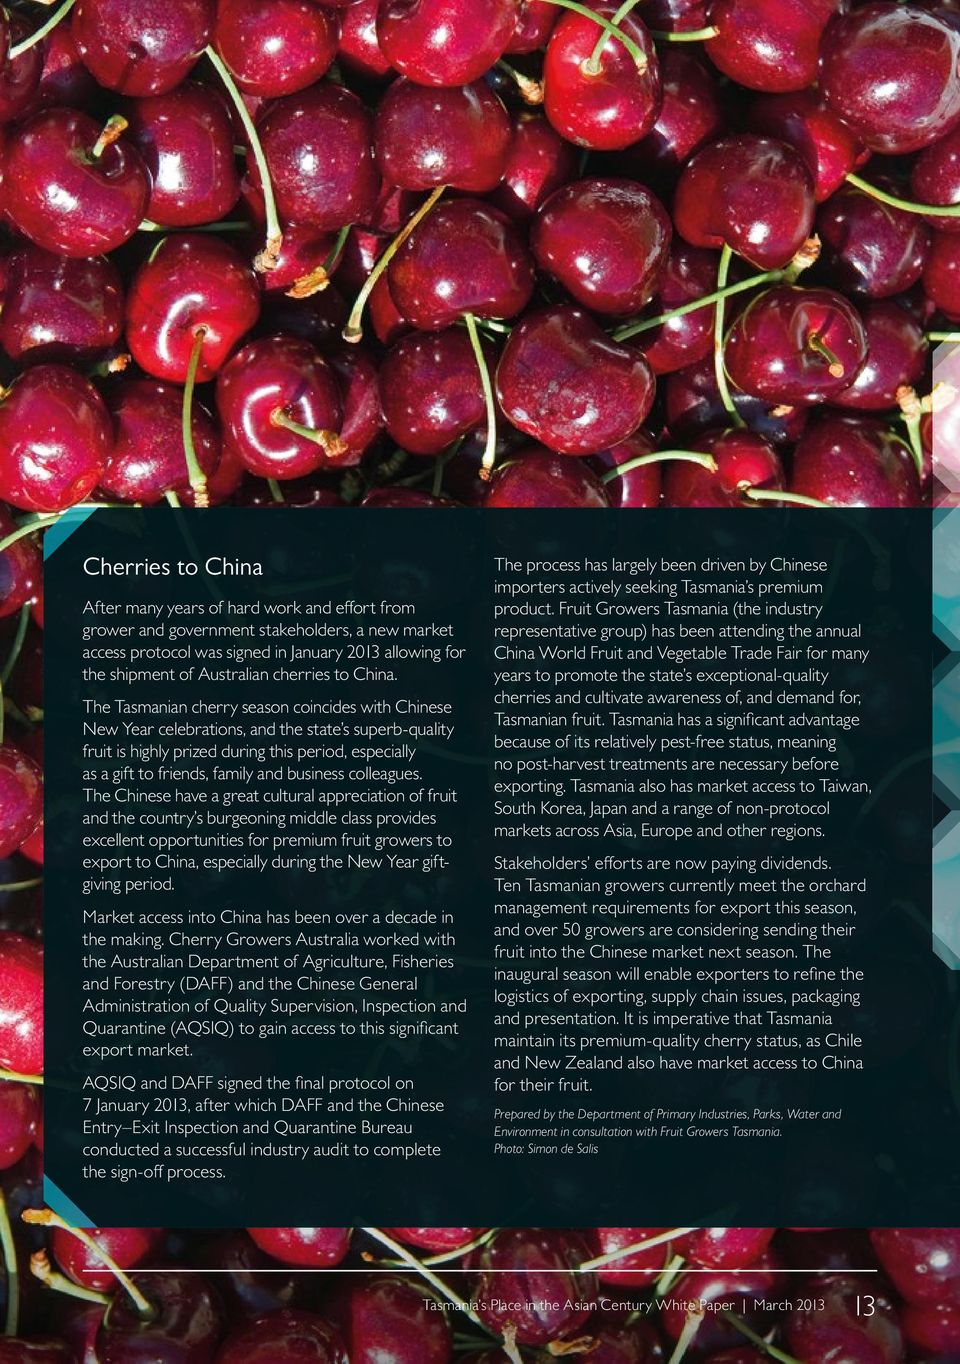 The Tasmanian cherry season coincides with Chinese New Year celebrations, and the state s superb-quality fruit is highly prized during this period, especially as a gift to friends, family and